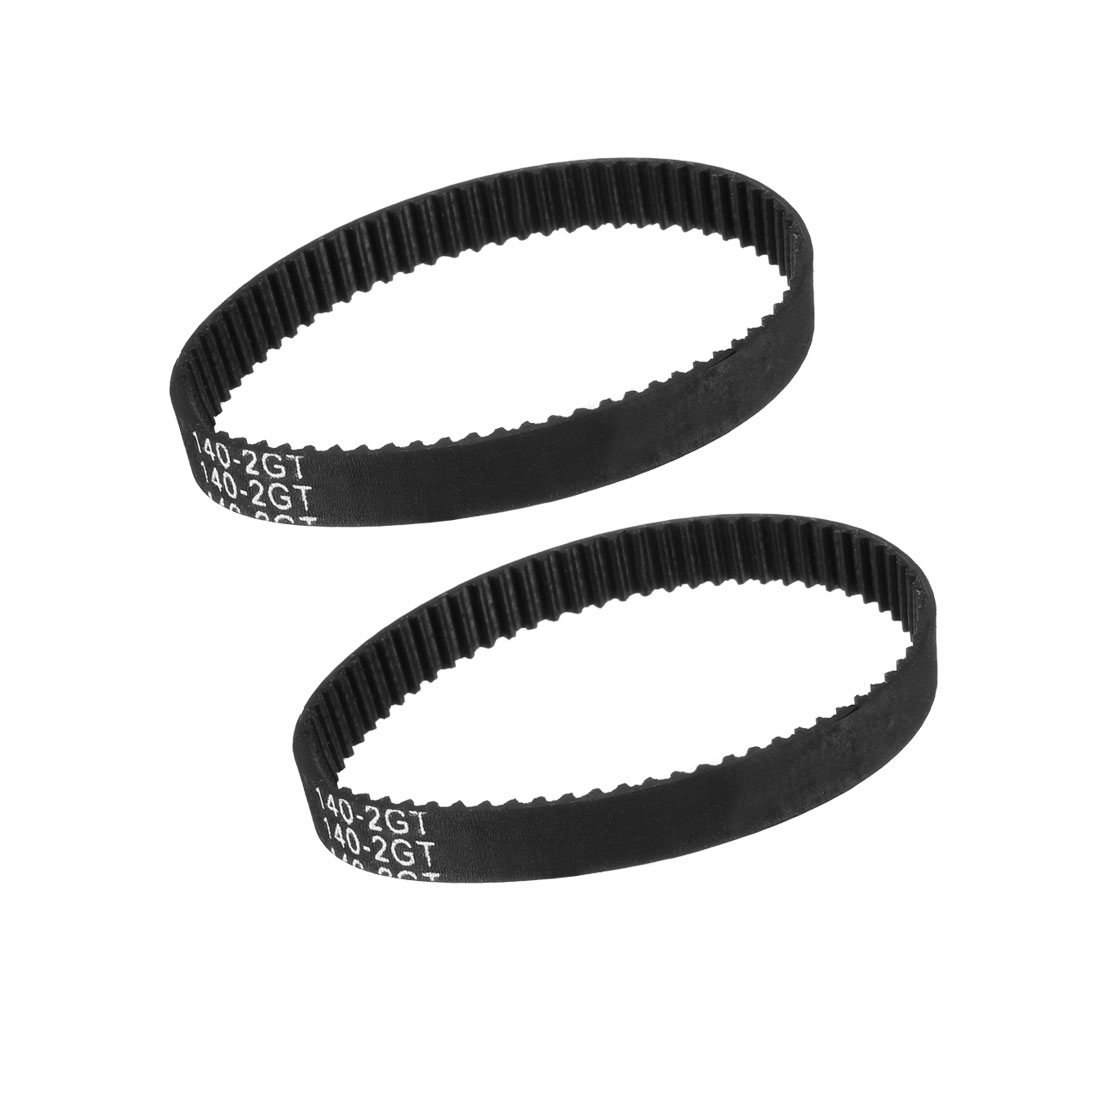 GT2 Timing Belt 140mm Closed Fit Synchronous Wheel for 3D Printer 2pcs